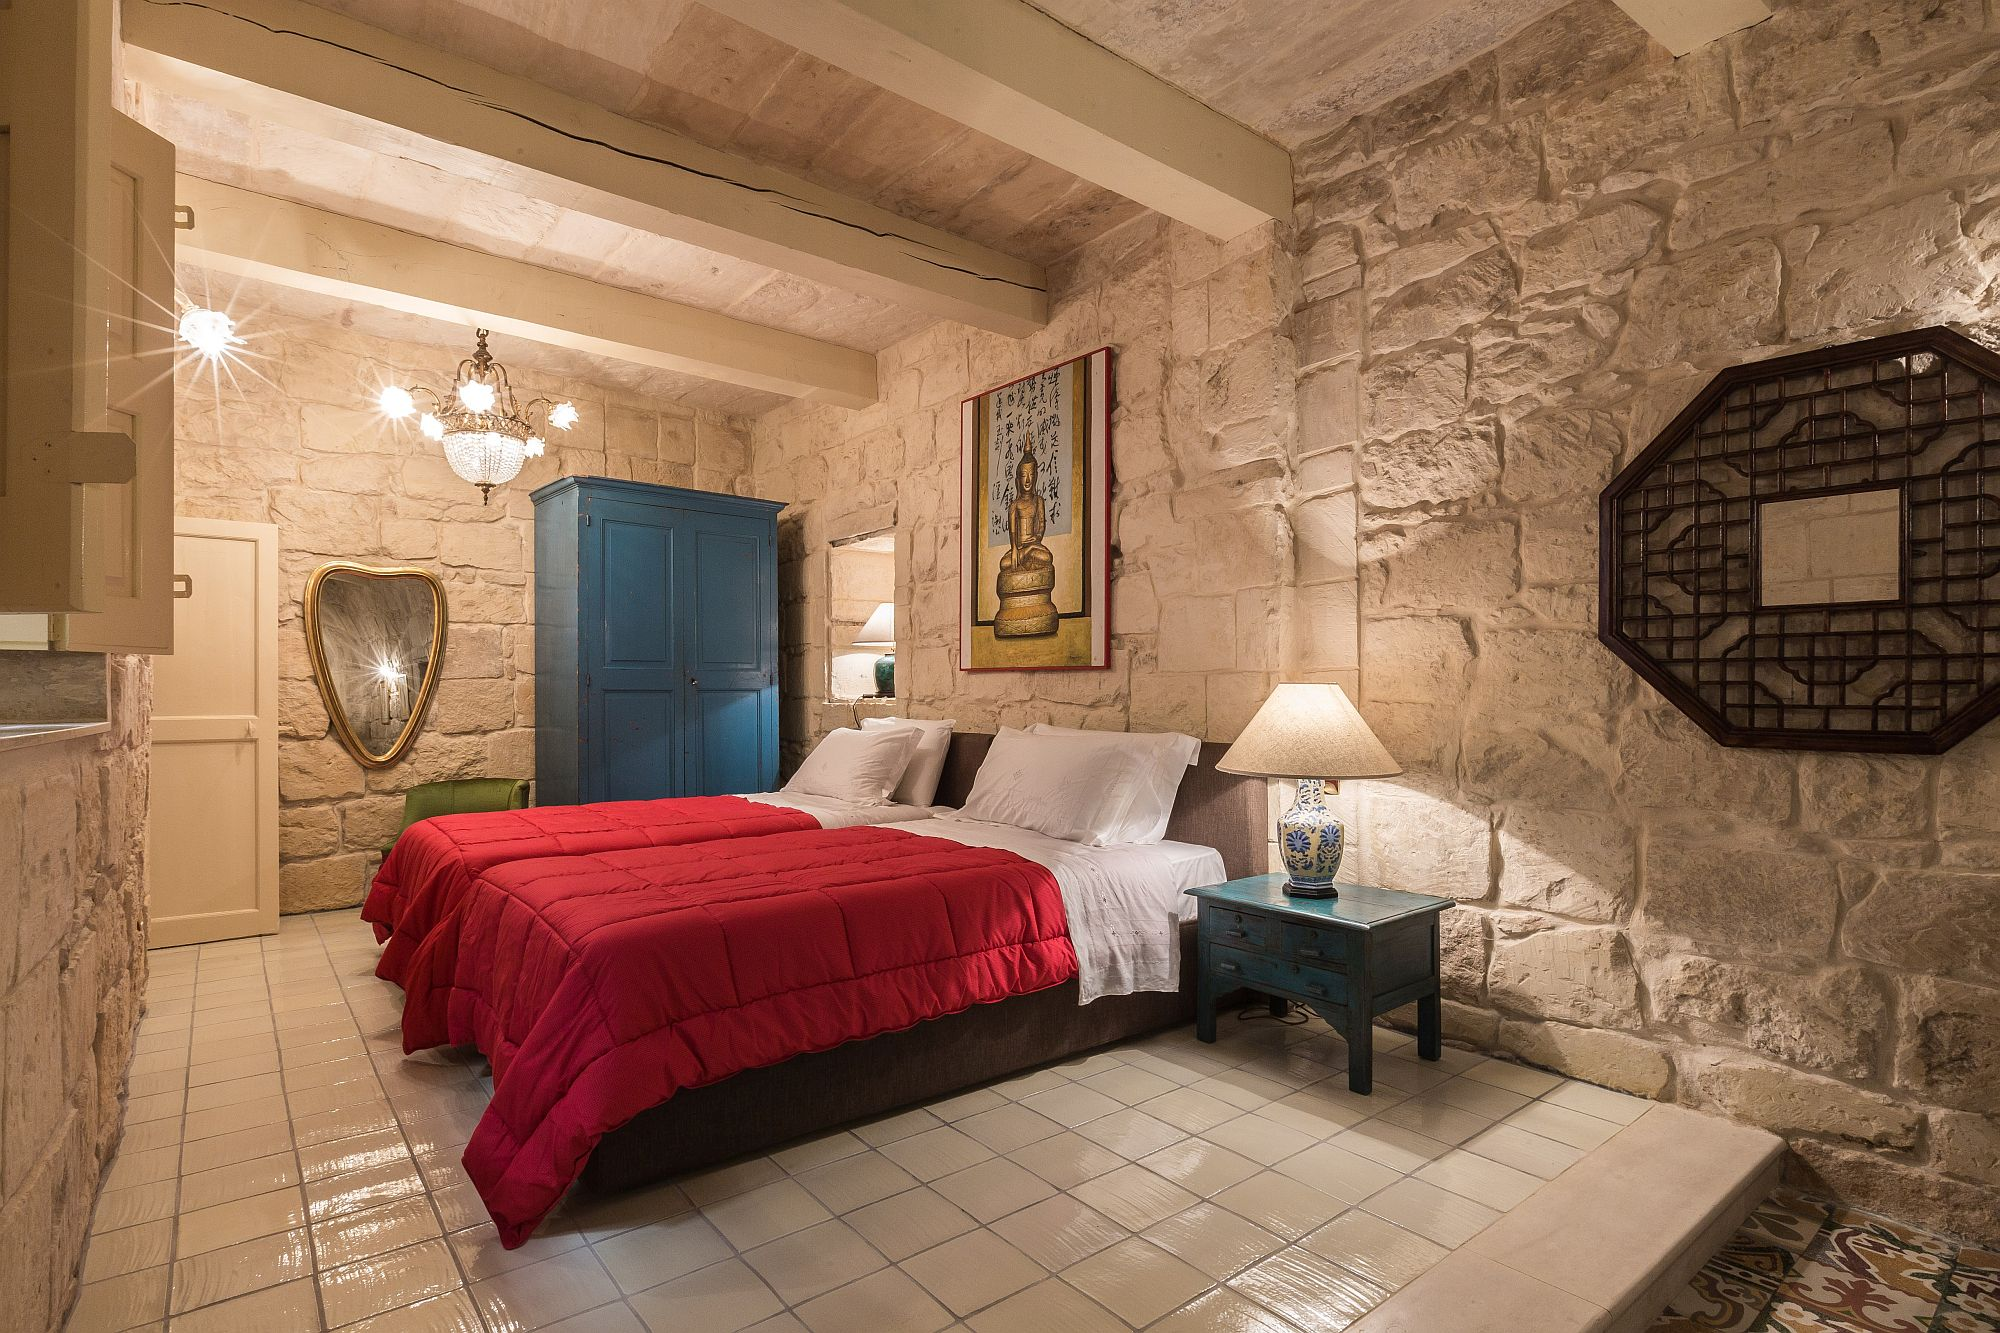 Bedroom of the second suite with traditional antique Maltese tiles, stone walls and pops of red and blue